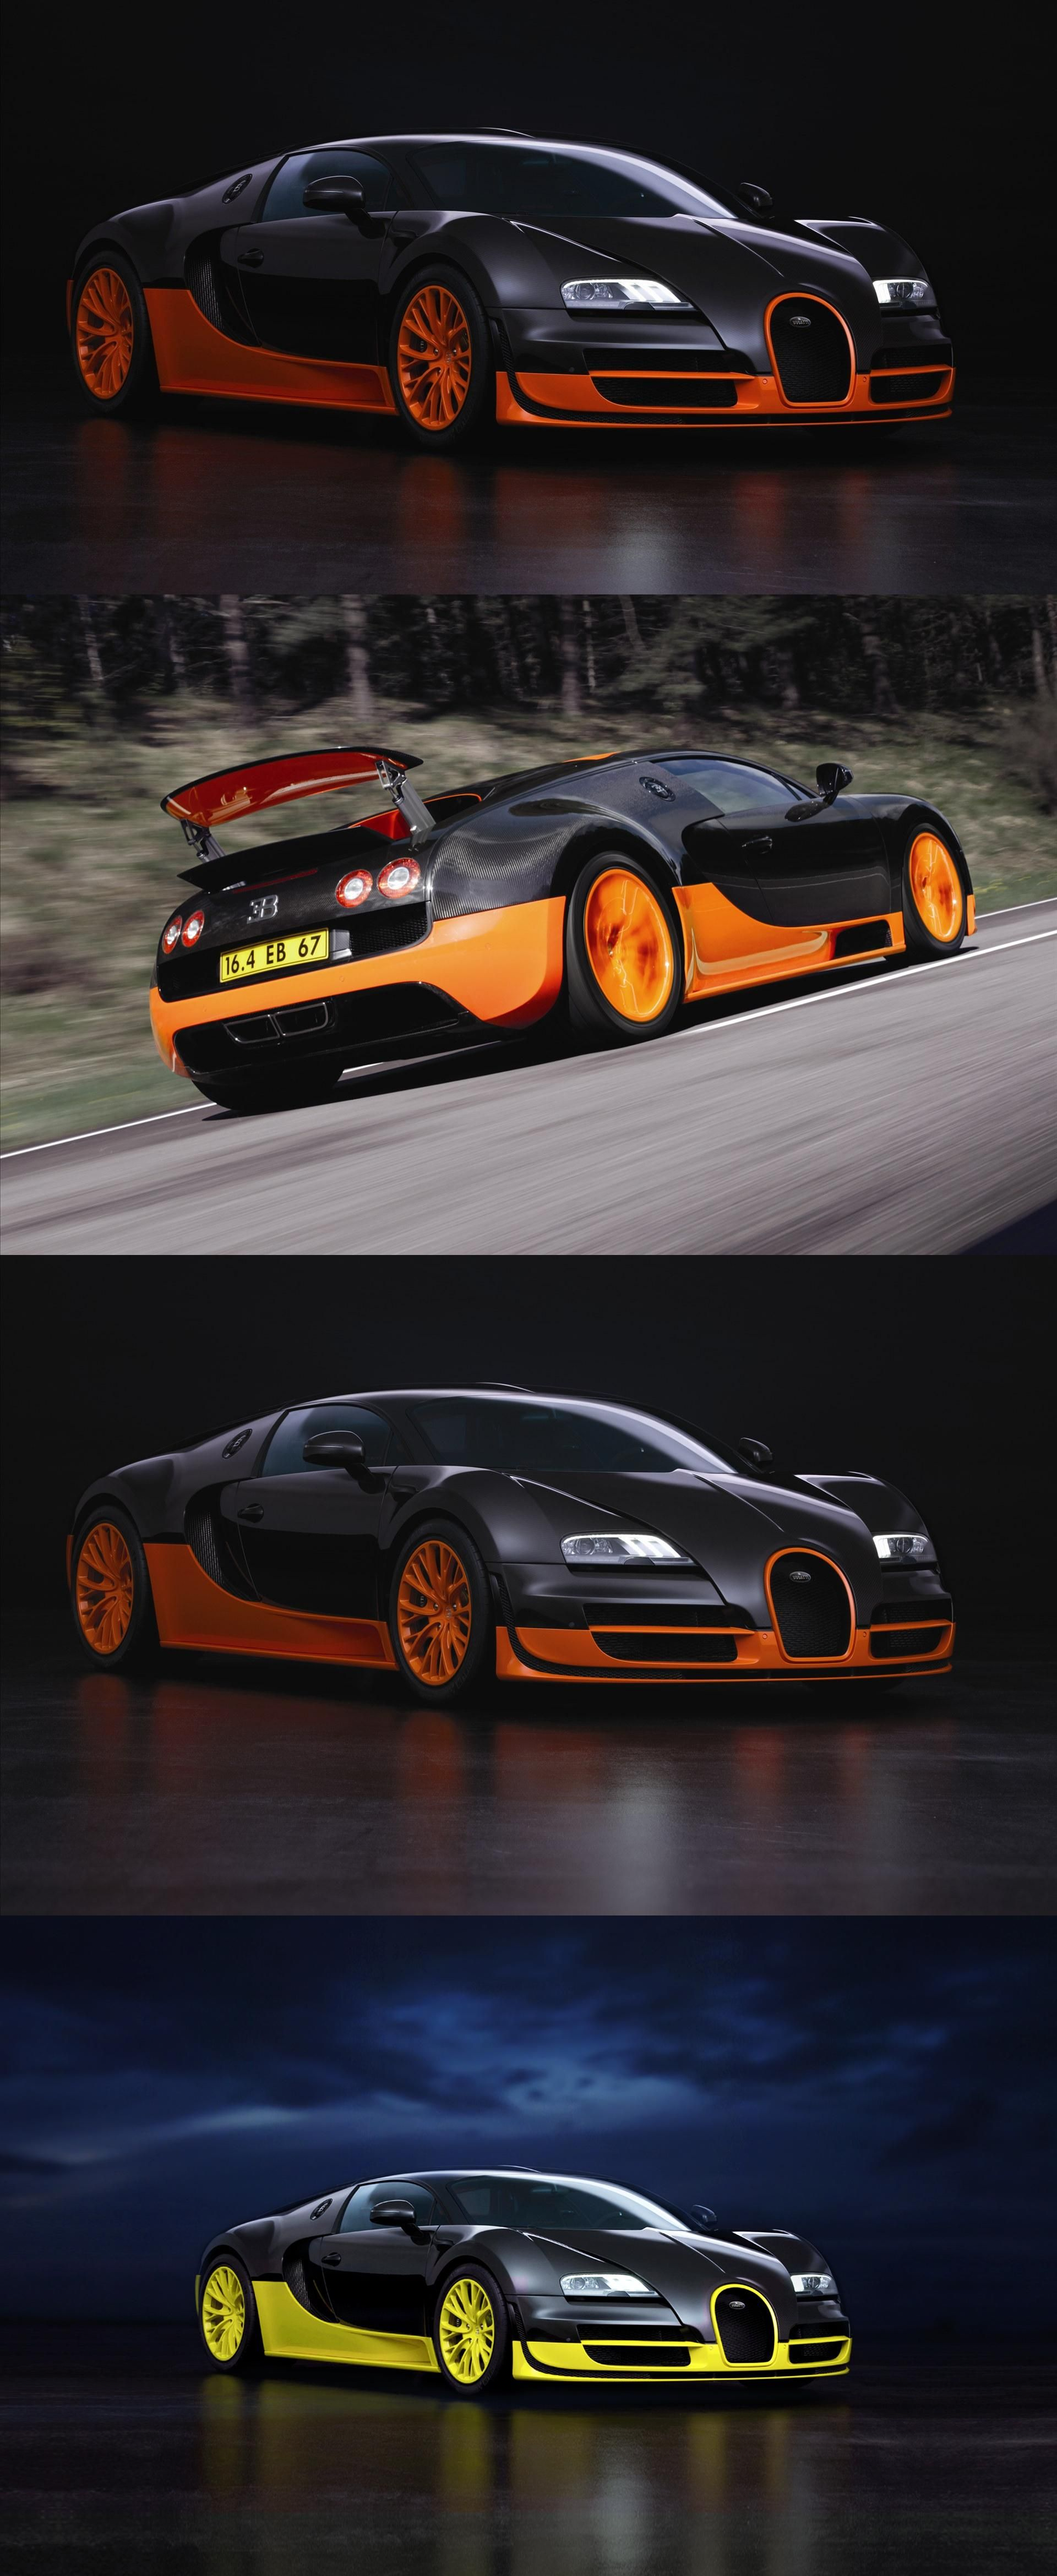 Bugatti Download 852 Wallpapers Page 1 Forwallpaper Com Bugatti Veyron Super Sport Bugatti Veyron Bugatti Cars